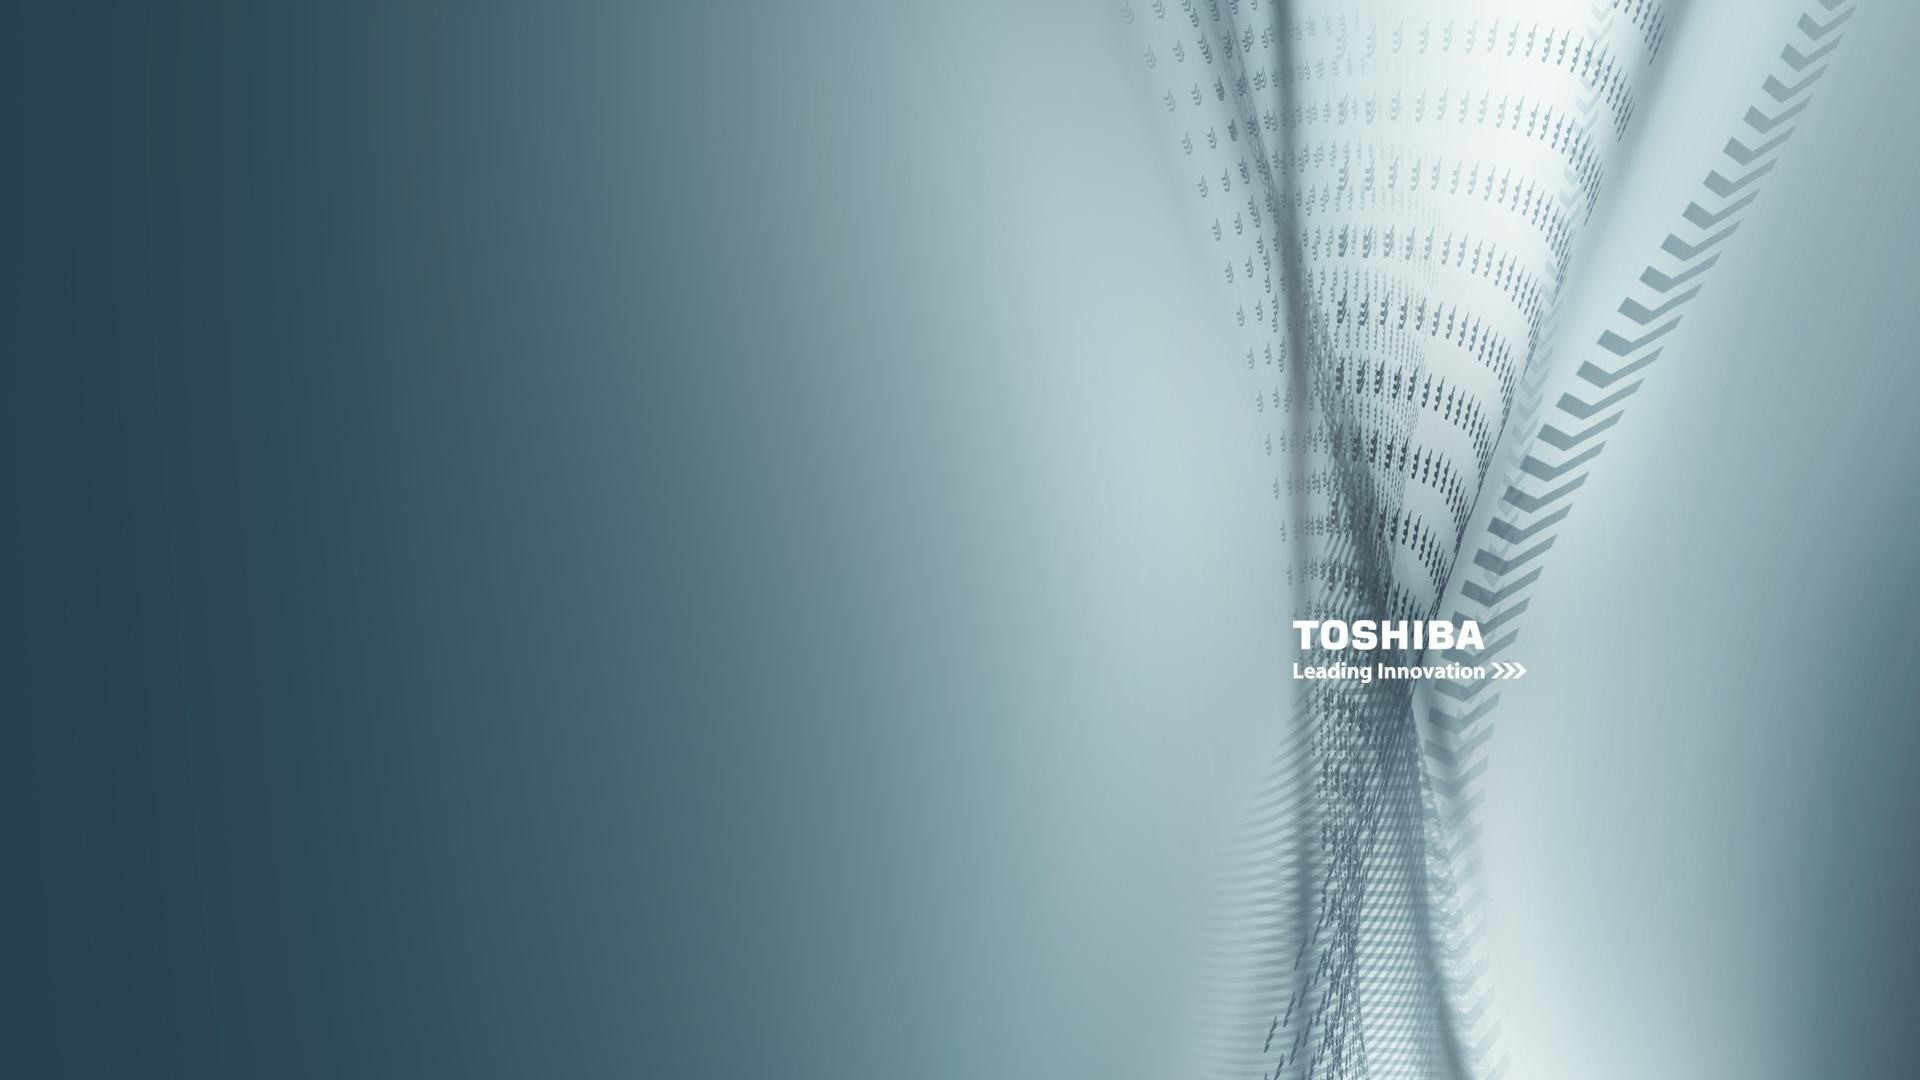 Toshiba Background Pictures (63+ images)